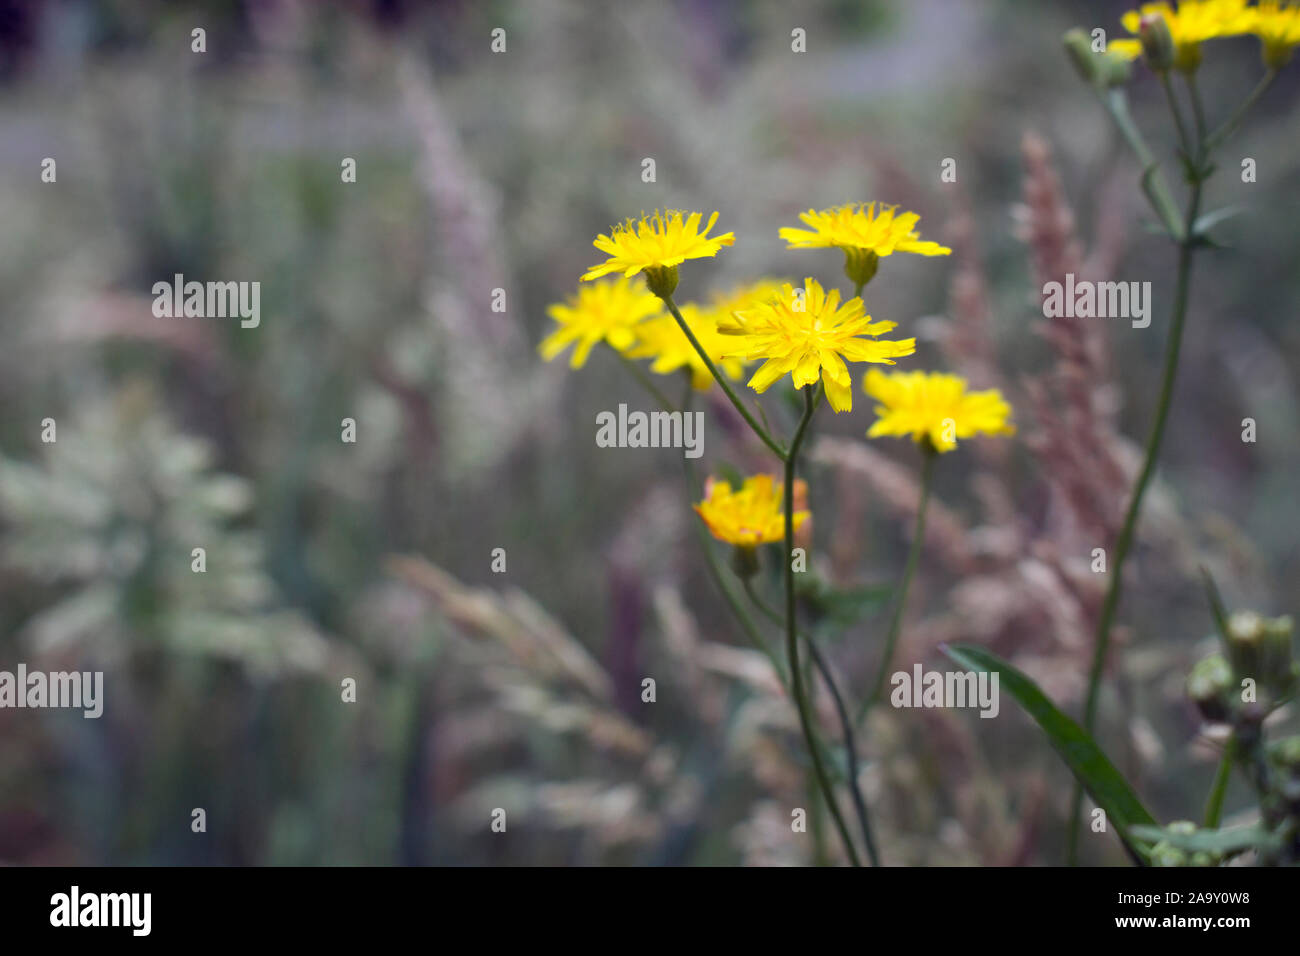 Nature in its simplest, purest form. The wild spring nature of southern Brazil. Stock Photo